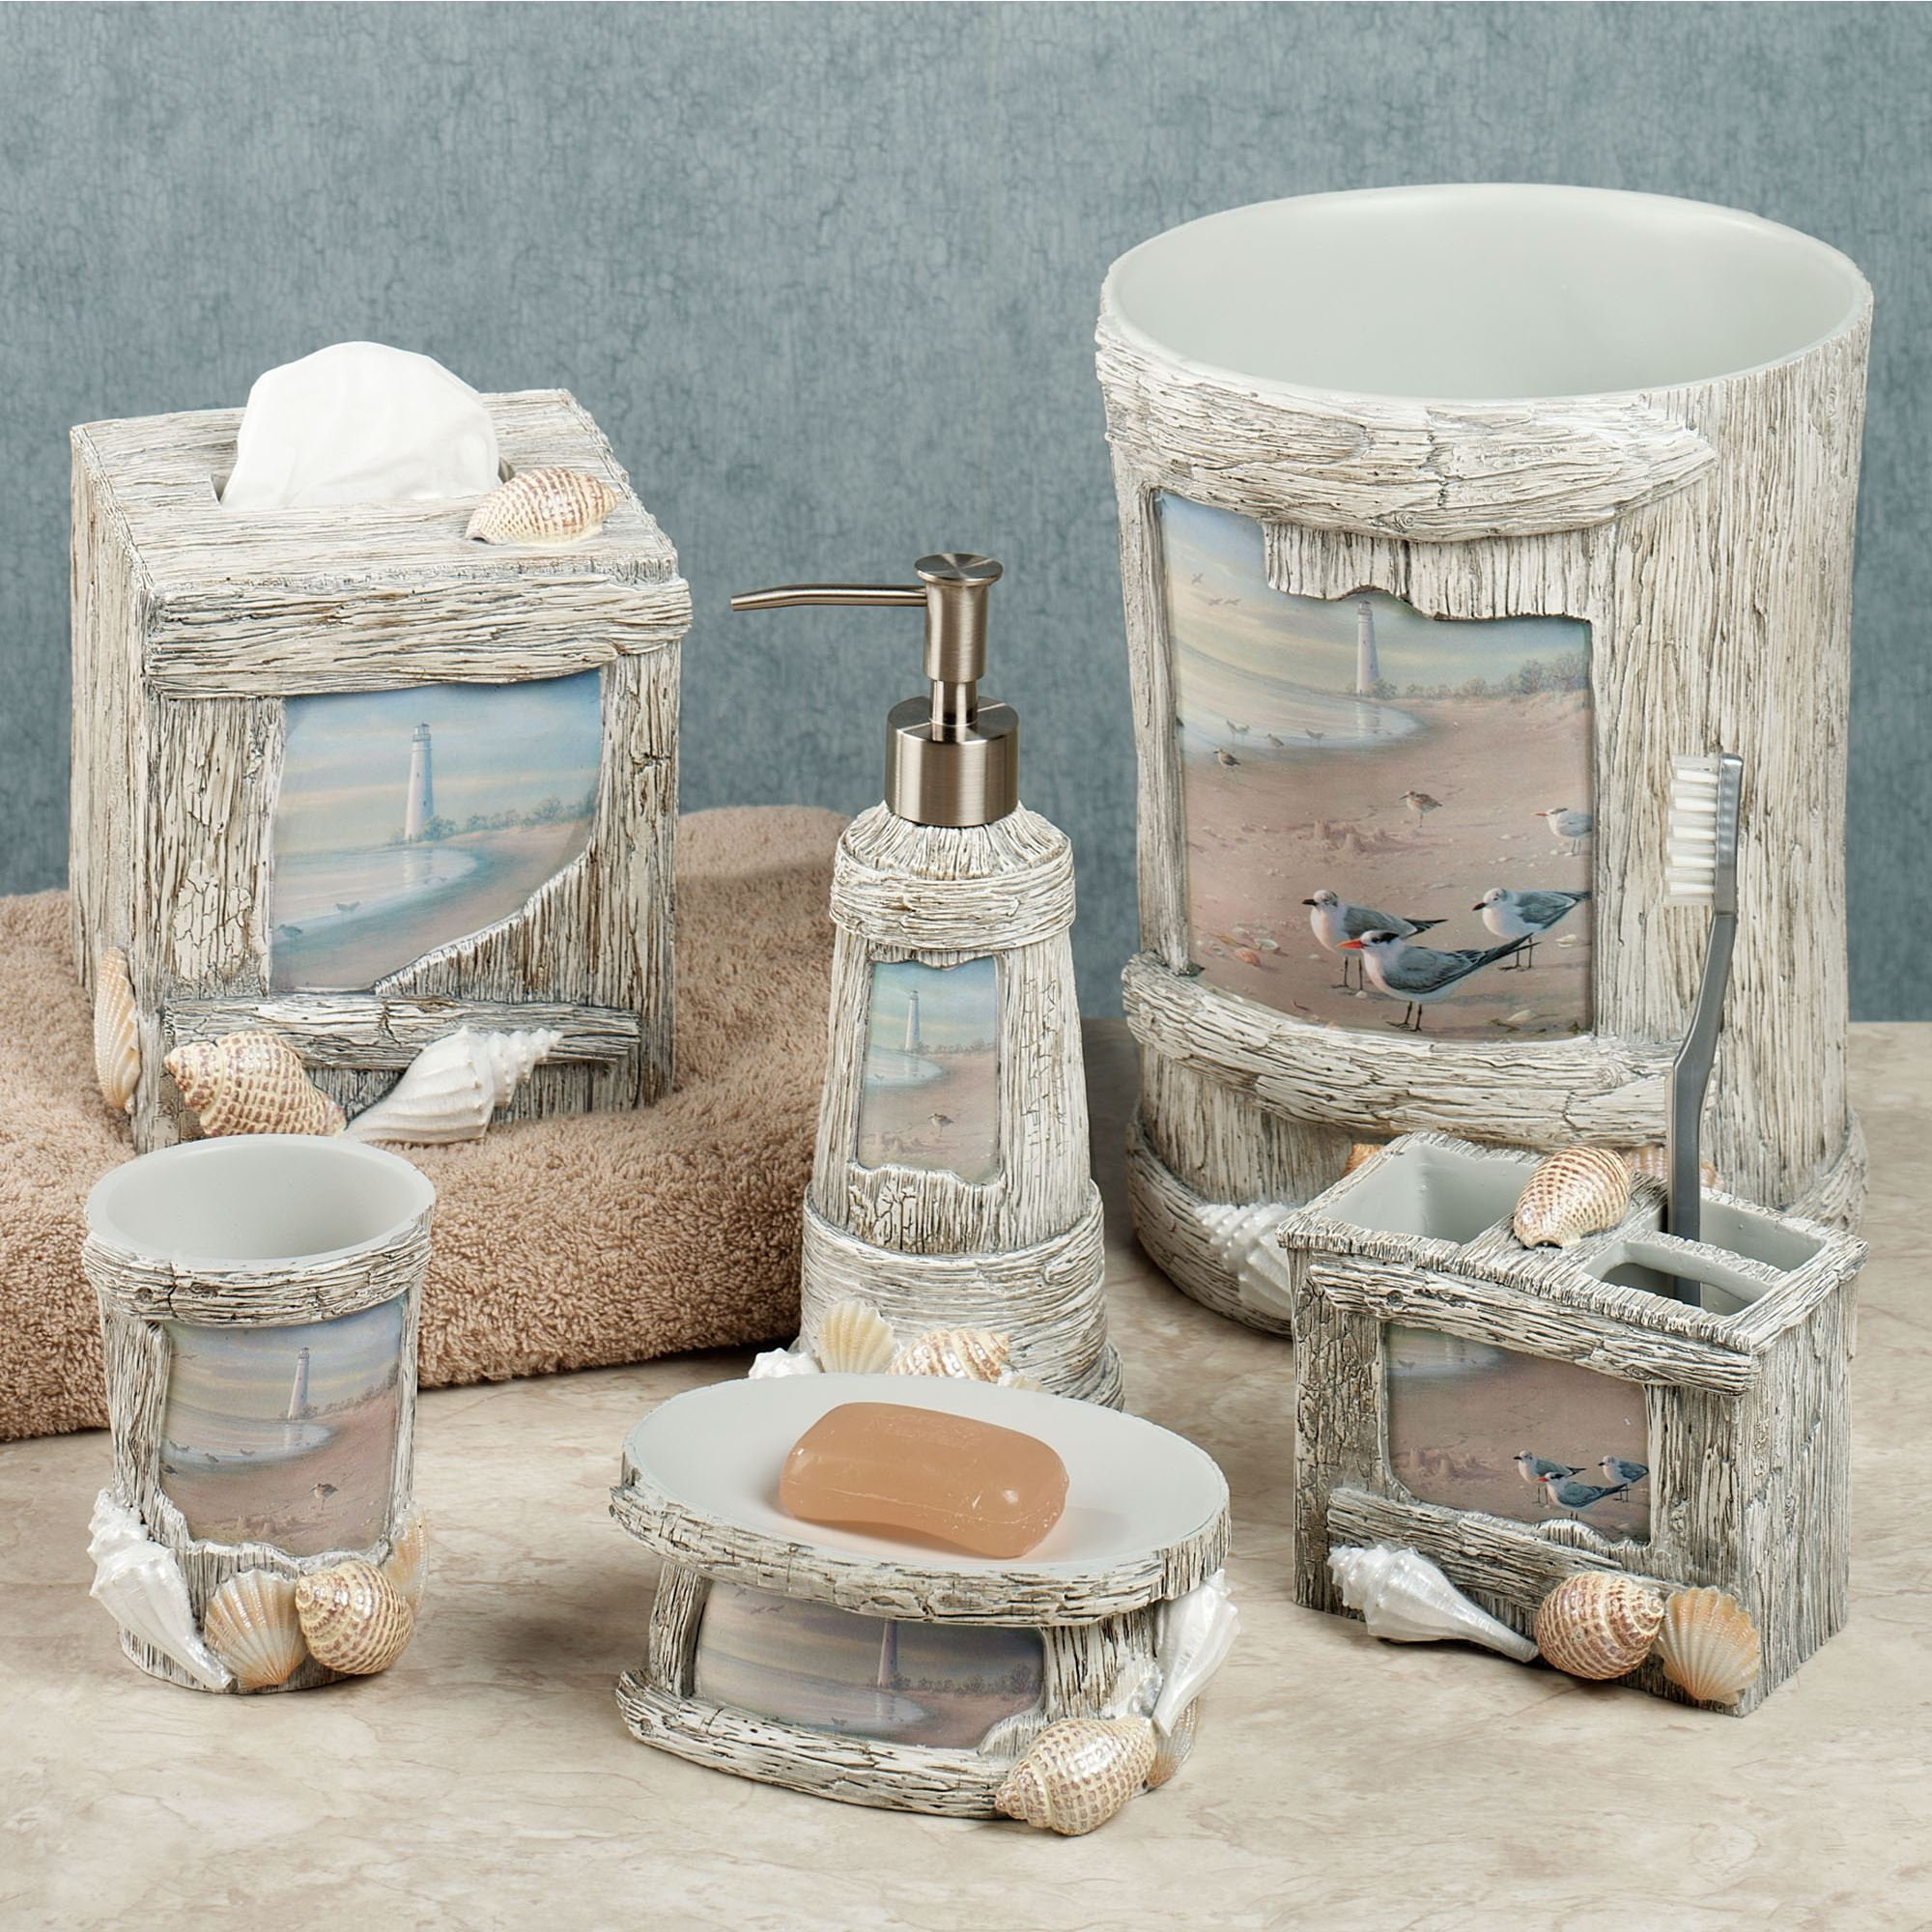 At the beach bath accessories for Paintings for bathroom decoration